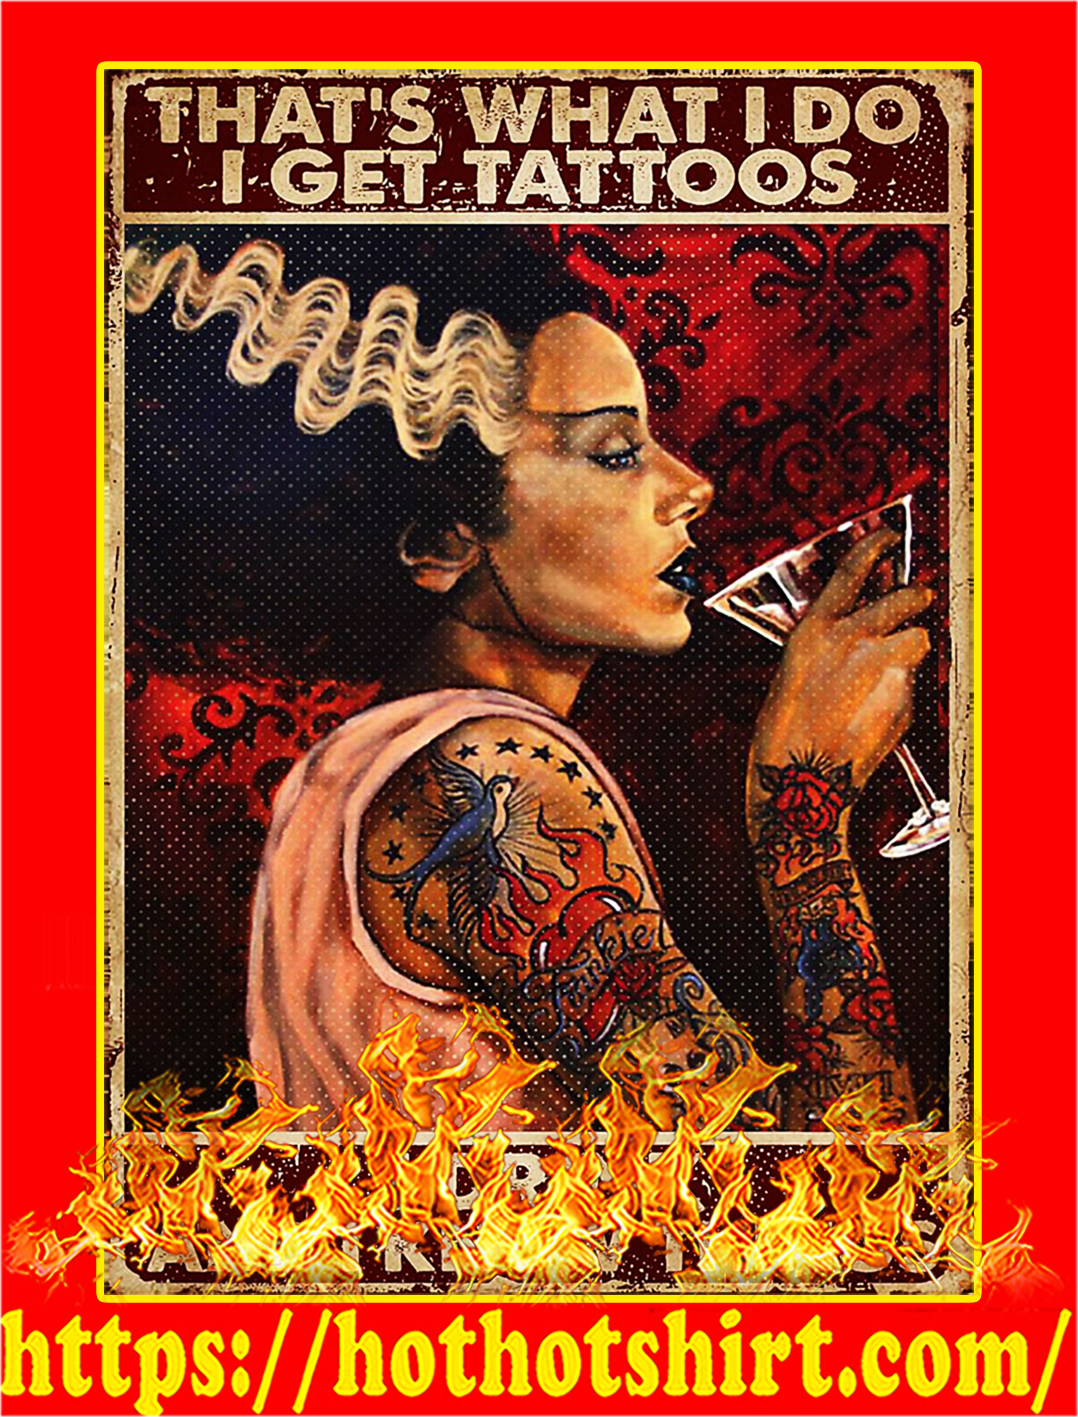 Tattoo woman that's what I do I get tattoos poster - A1